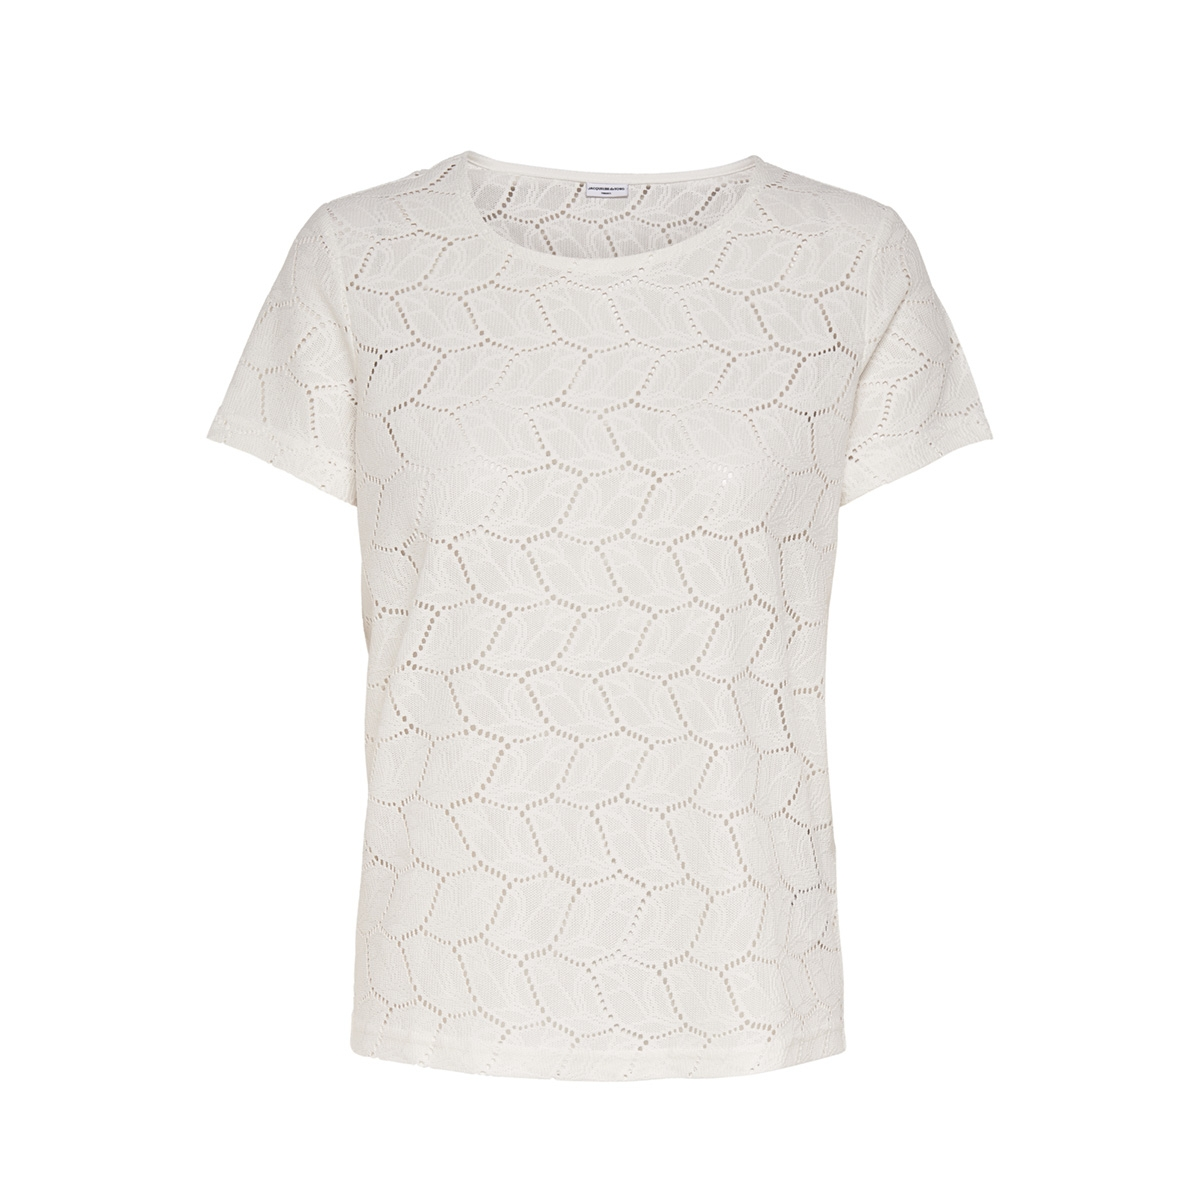 jdytag s/s lace top jrs rpt2 noos 15152331 jacqueline de yong t-shirt cloud dancer